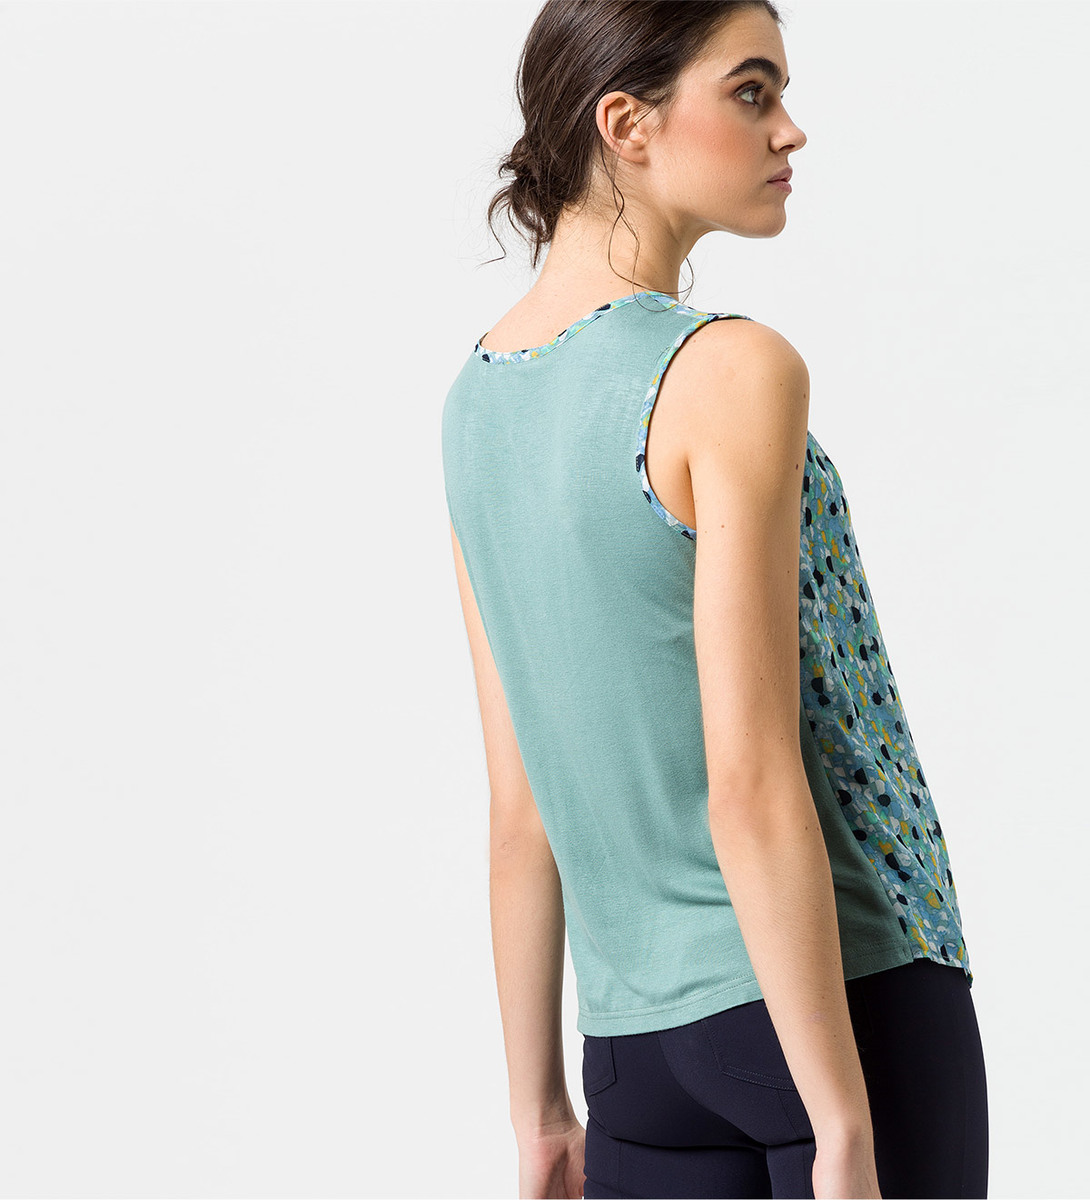 Bluse mit Alloverprint in dusk jade